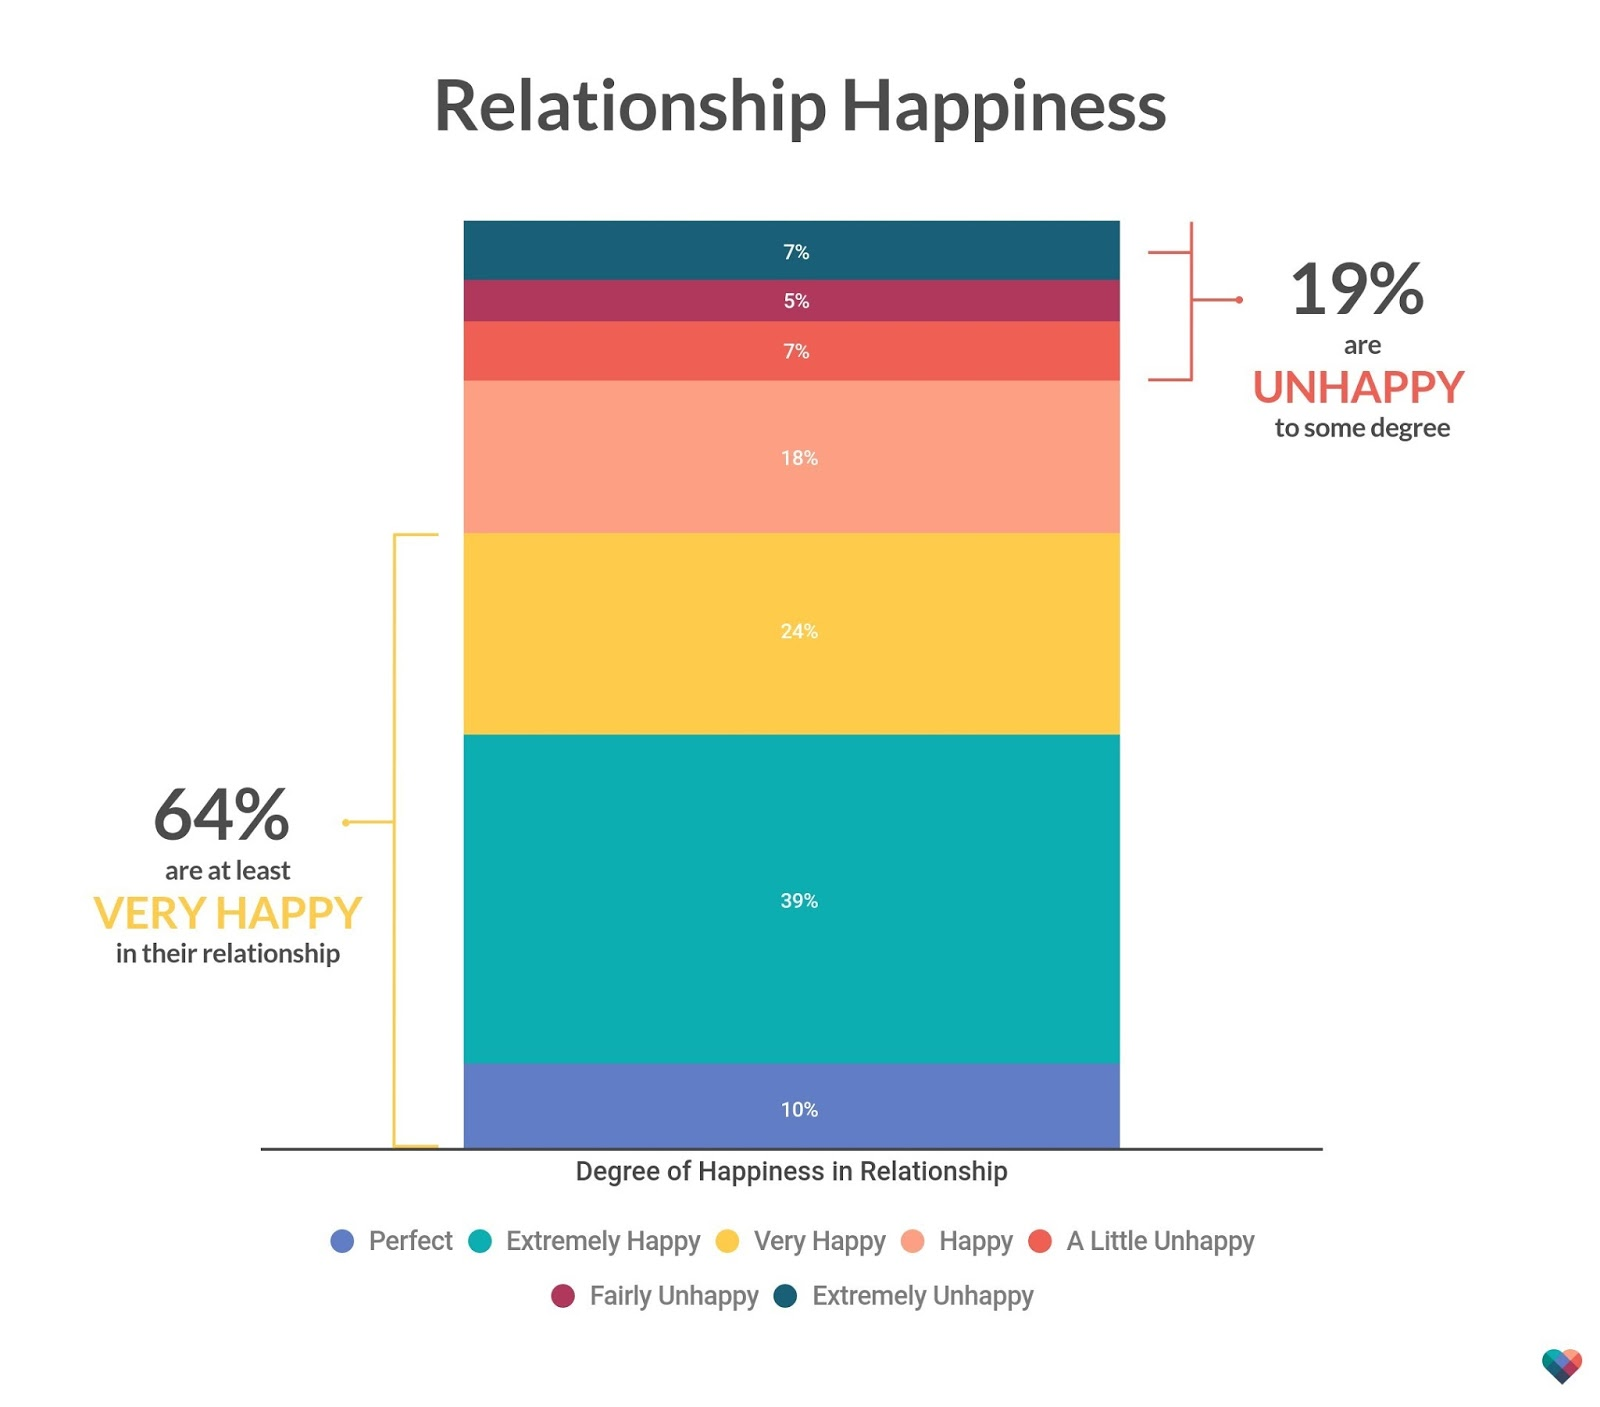 Percentage of successful online dating relationships